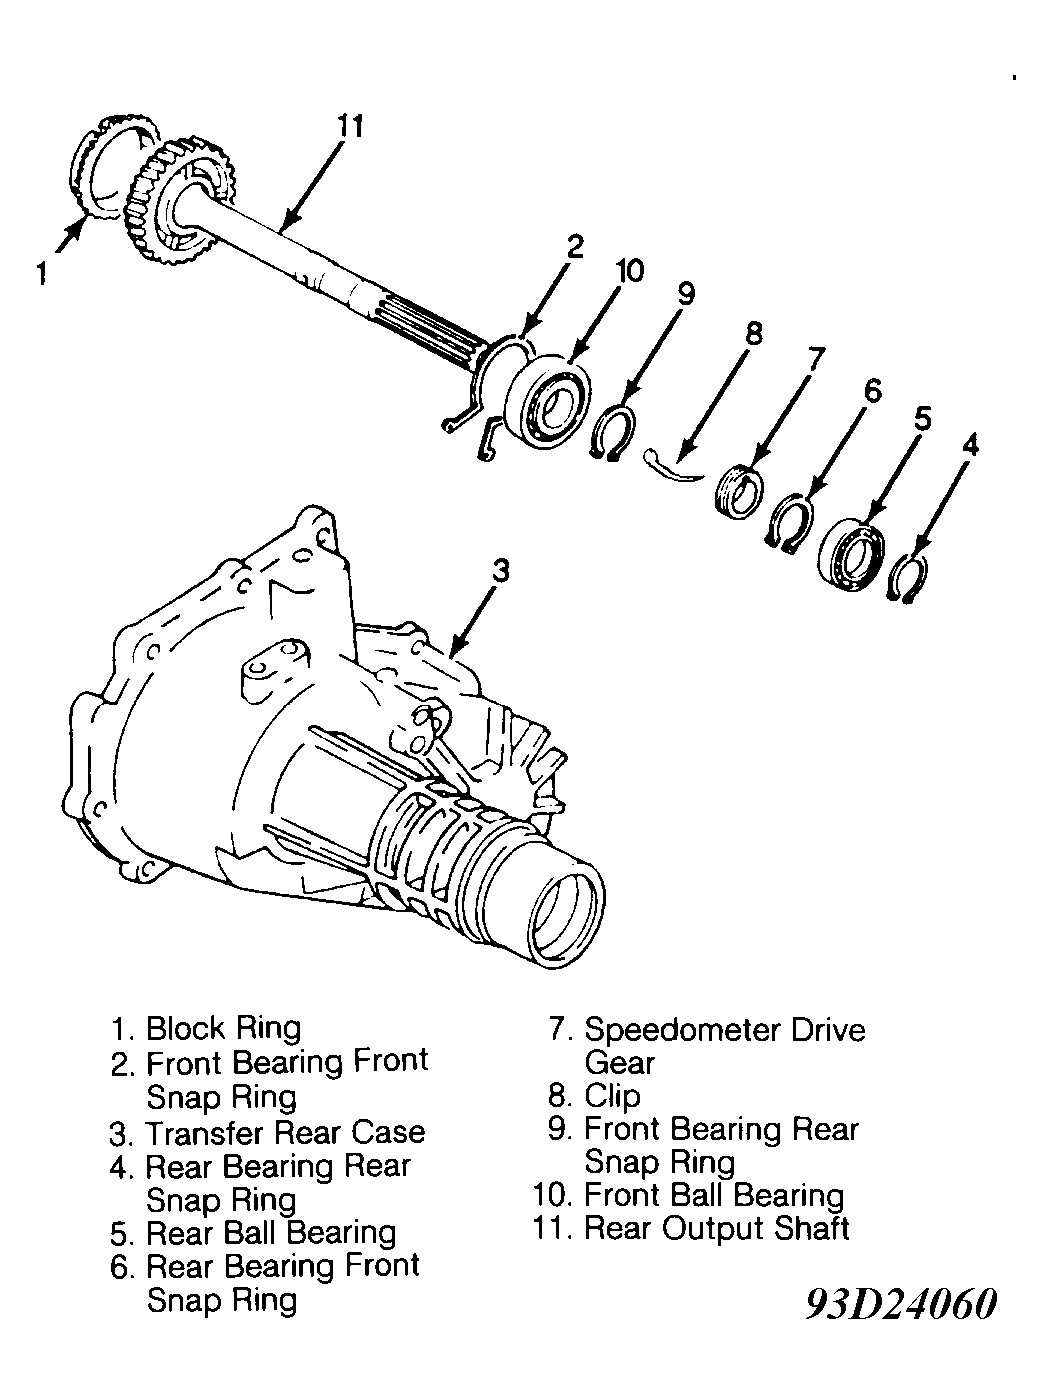 1993 Isuzu Rodeo Transfer Case Will Not Engage